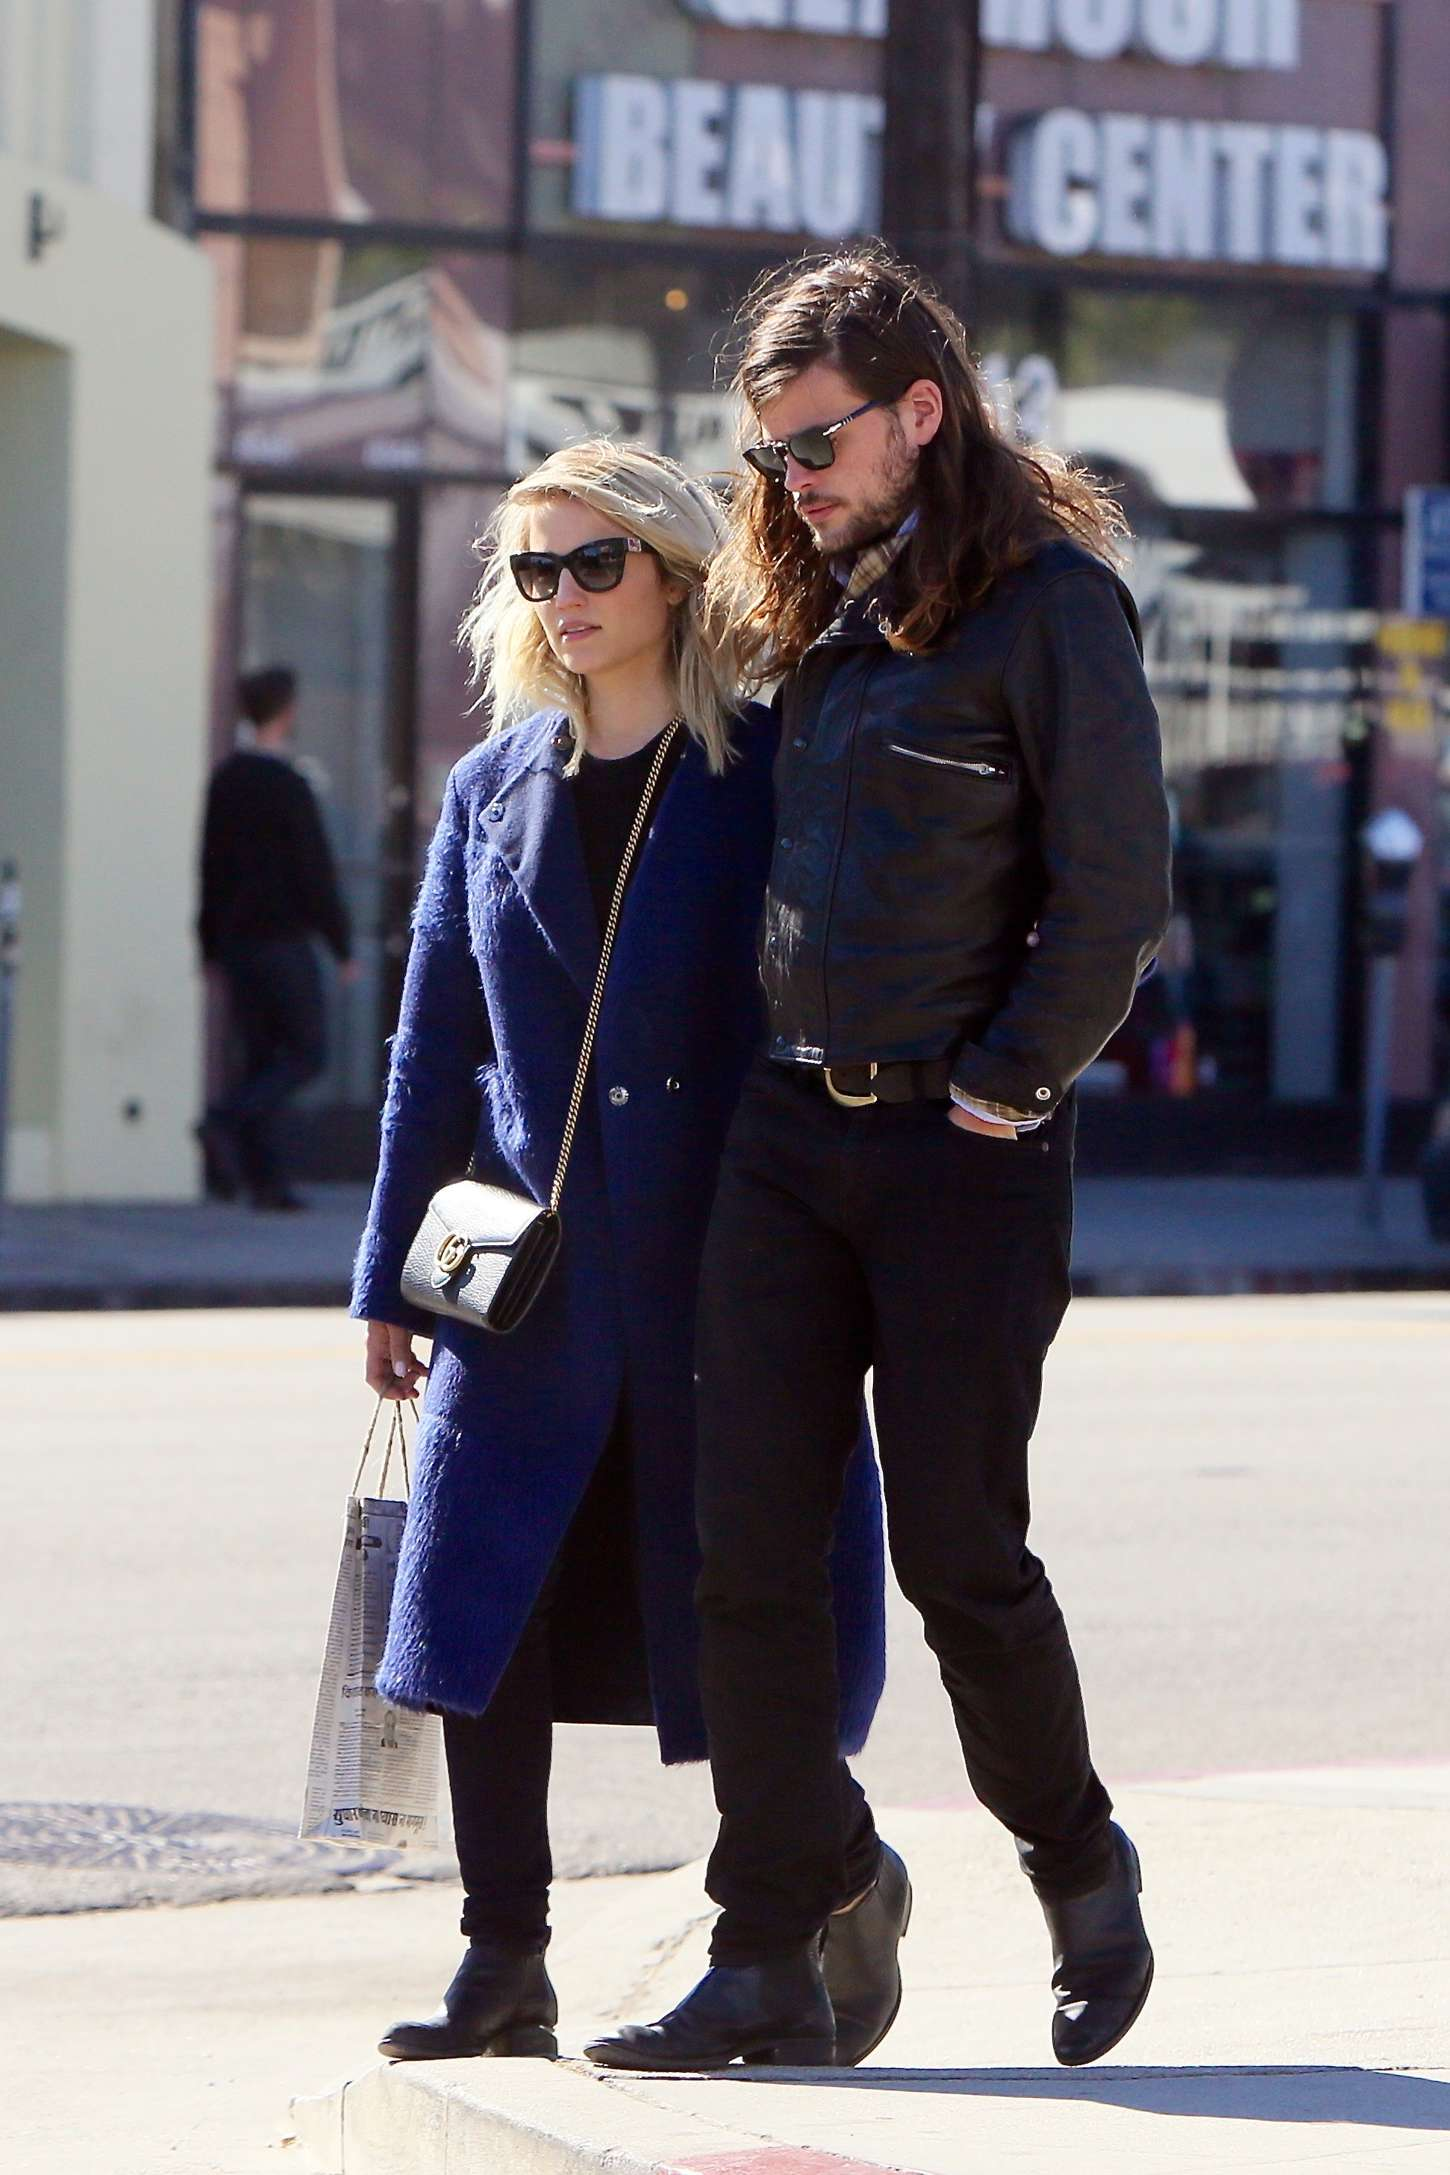 Dianna agron dating in Perth